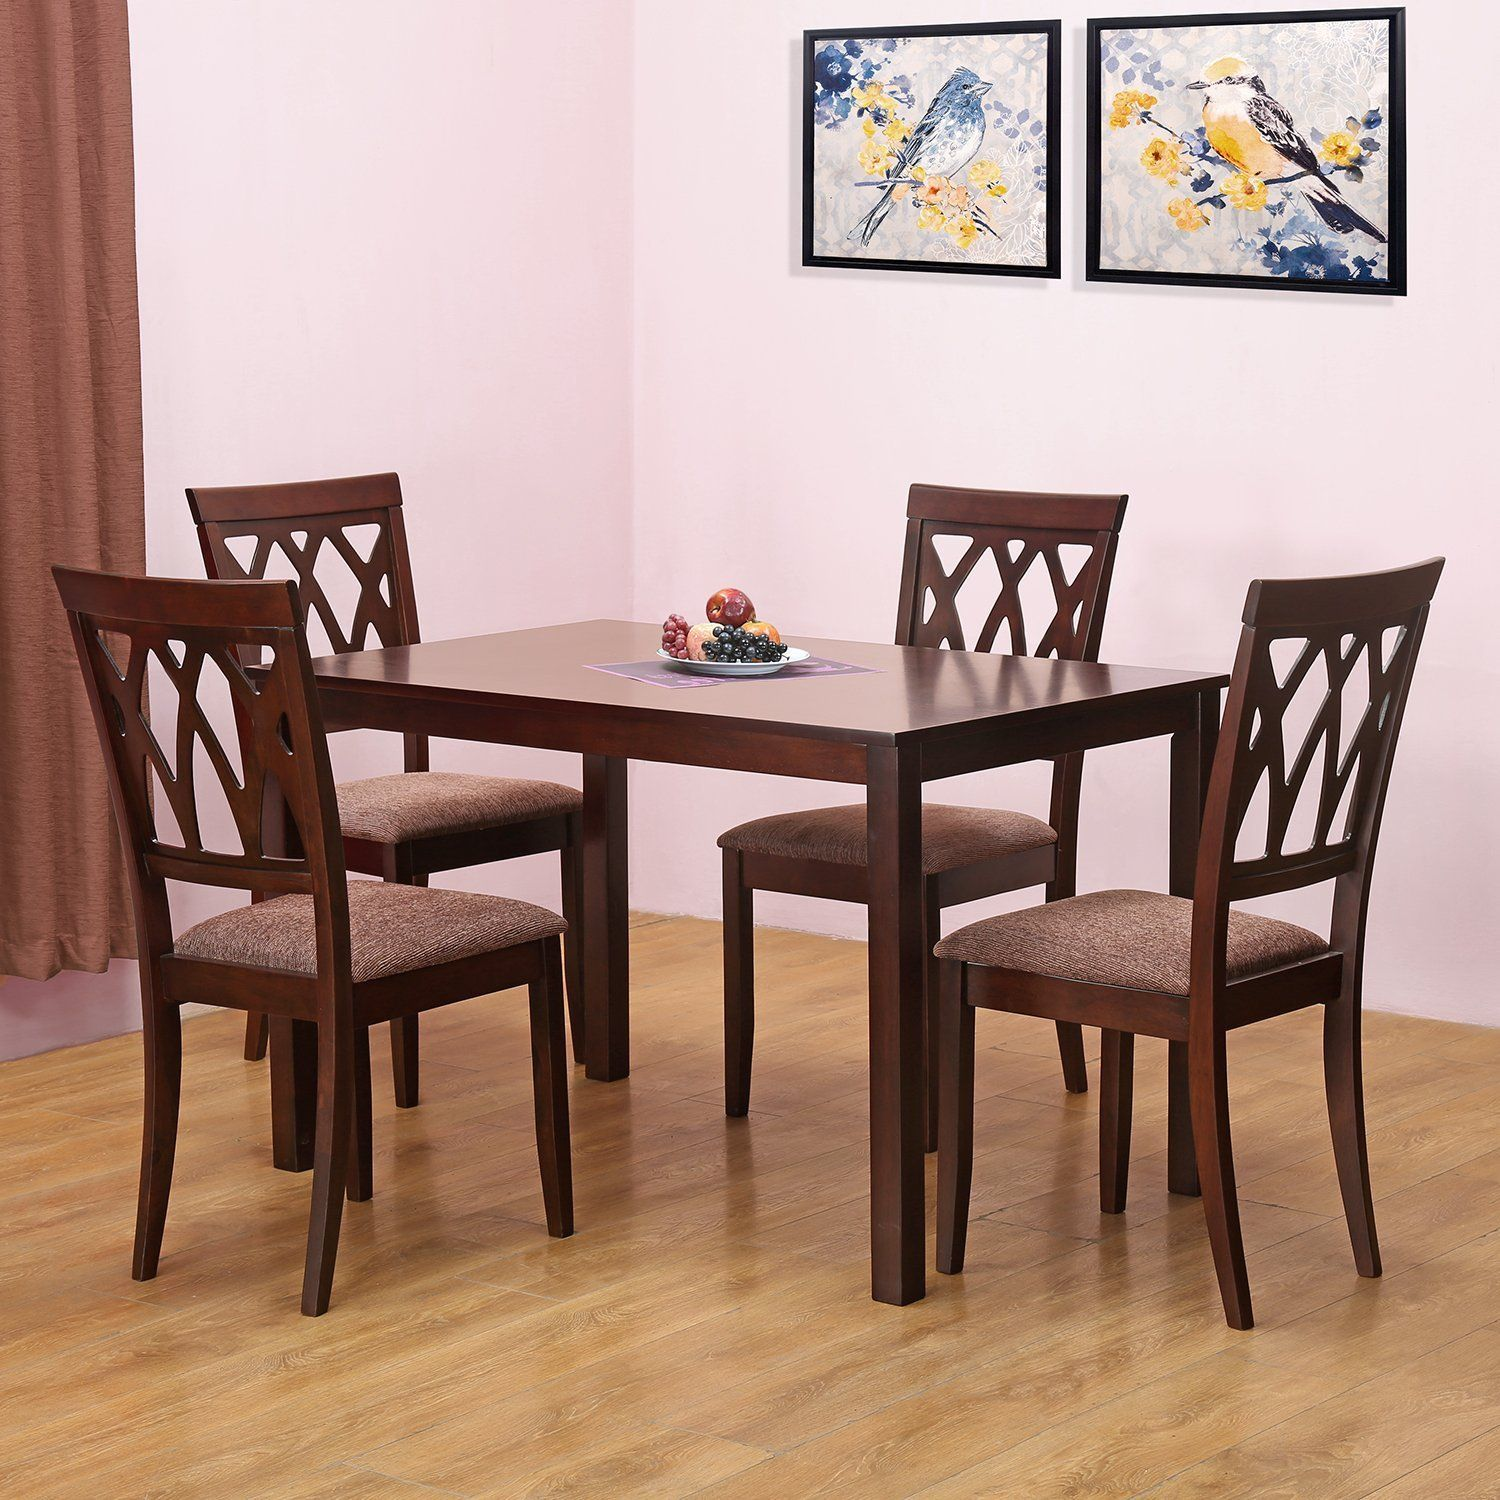 Buy Dining Tables New in House Designerraleigh kitchen